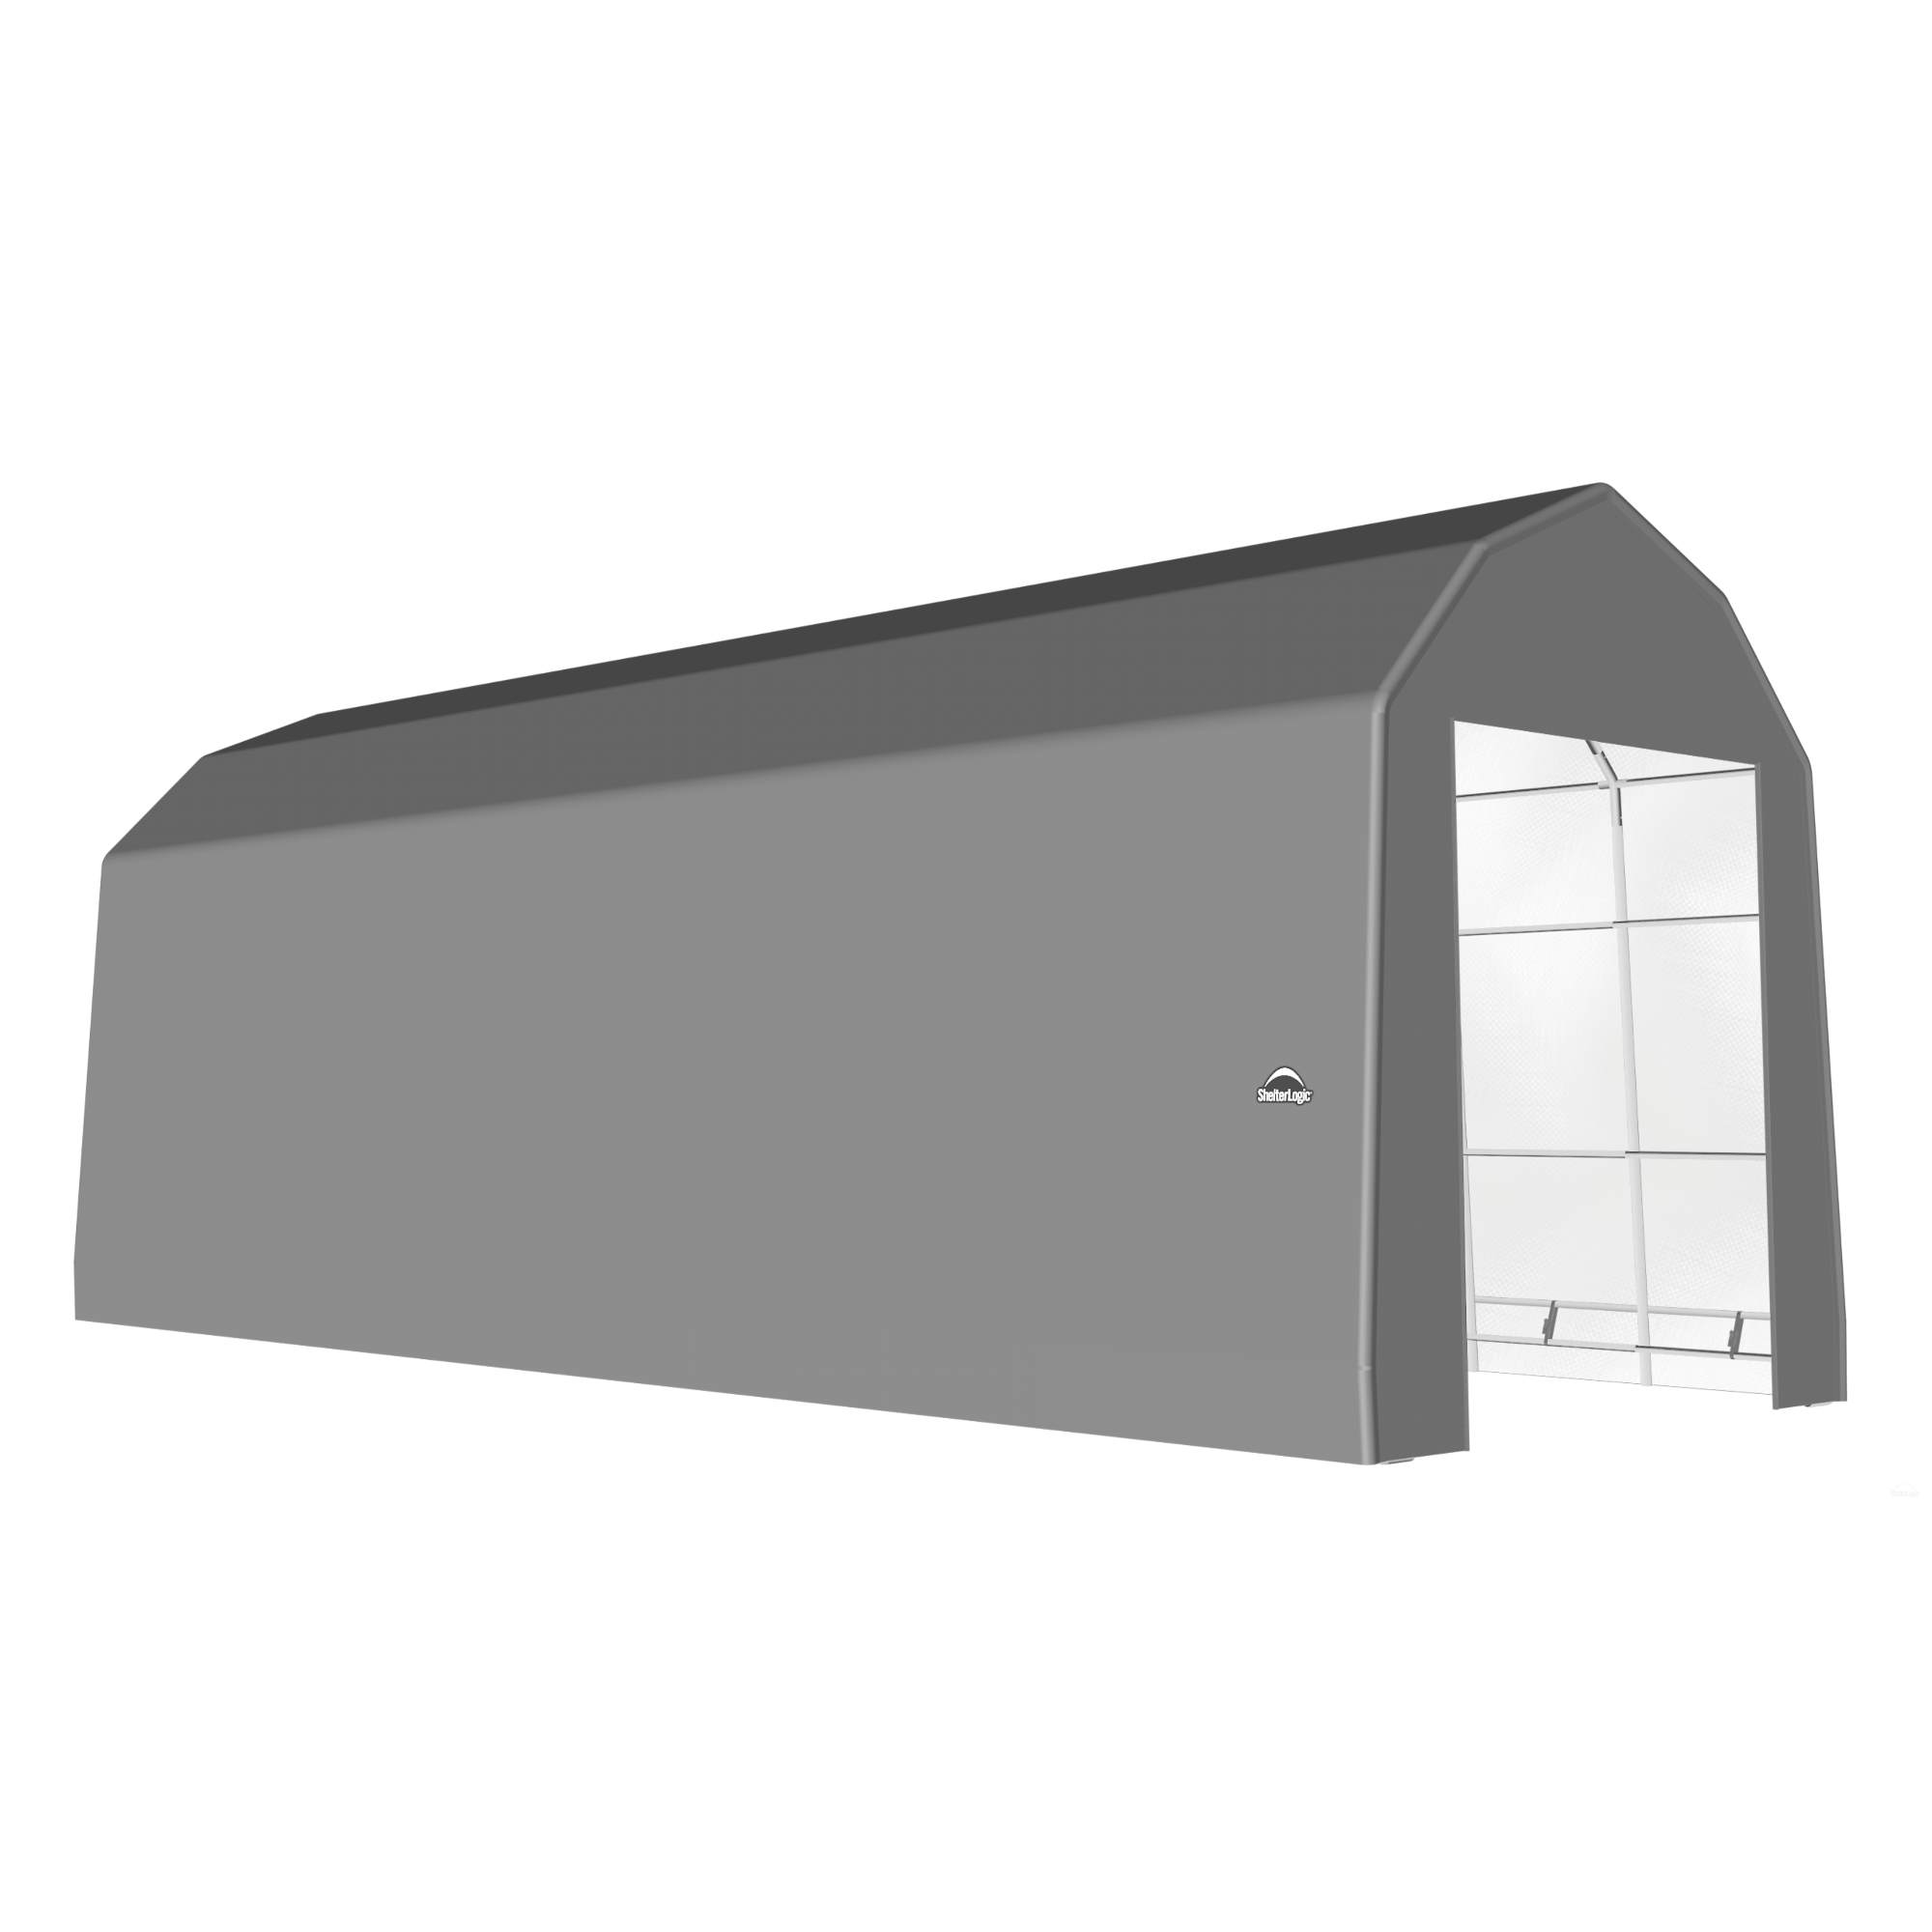 SP Barn 15X36X17 Gray 14 oz PE Shelter